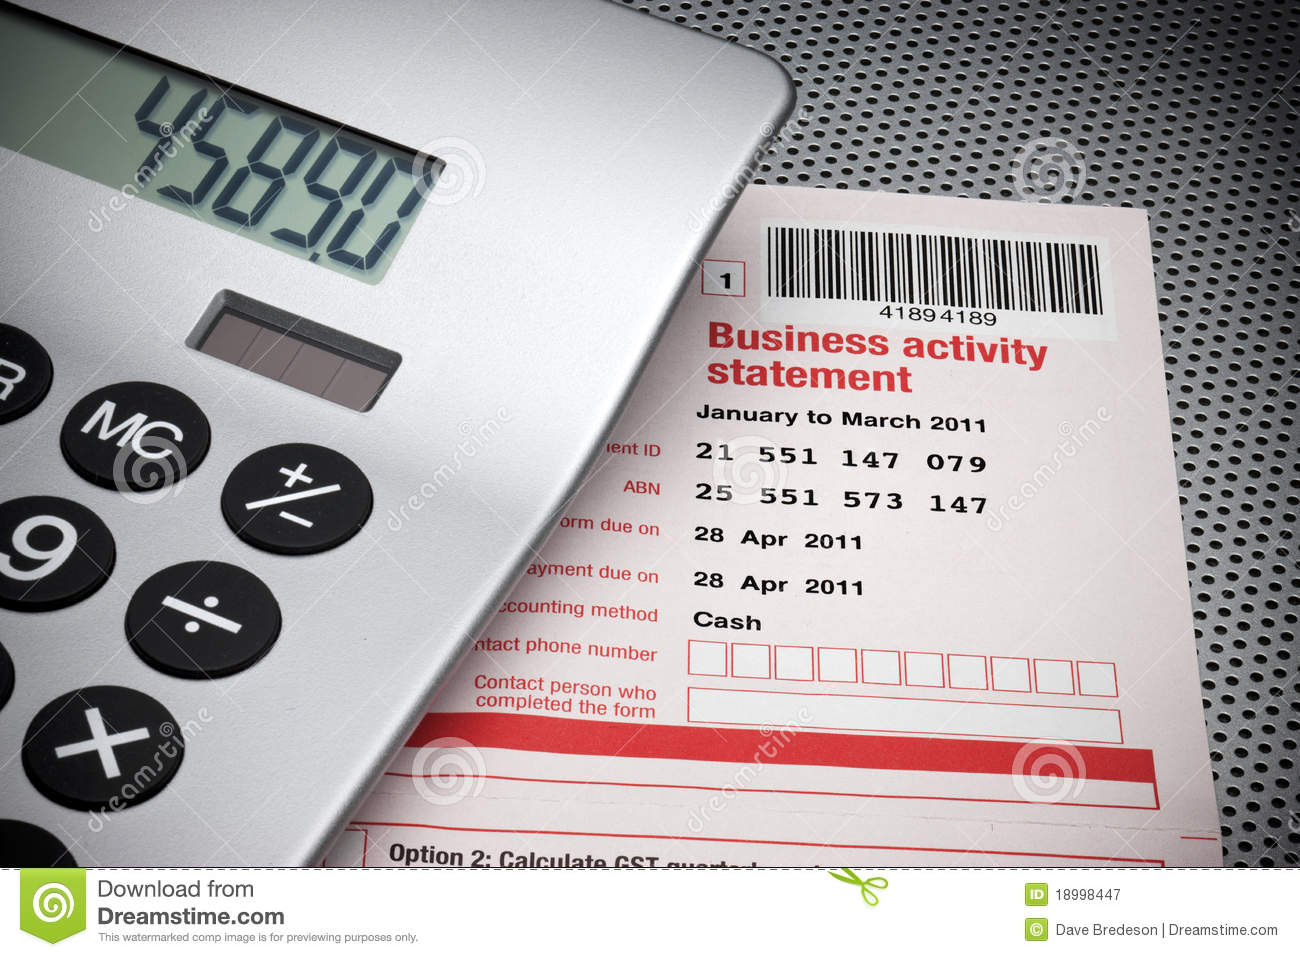 Business activity statement tax stock image image of quarterly an australian business activity tax statement form with a calculator cheaphphosting